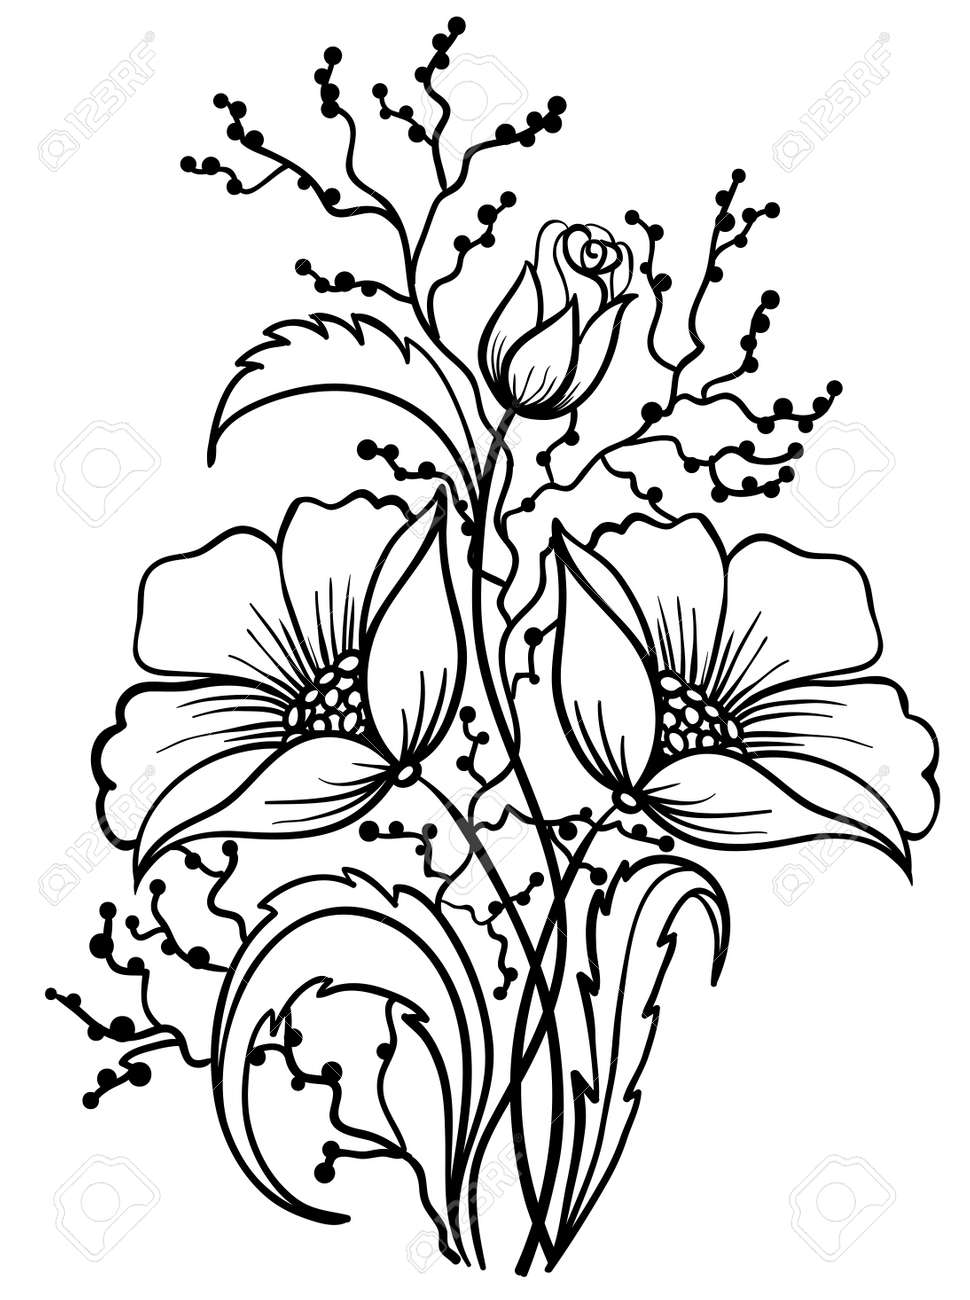 Arrangement of flowers black and white. Outline drawing of lines Stock Vector - 18567928